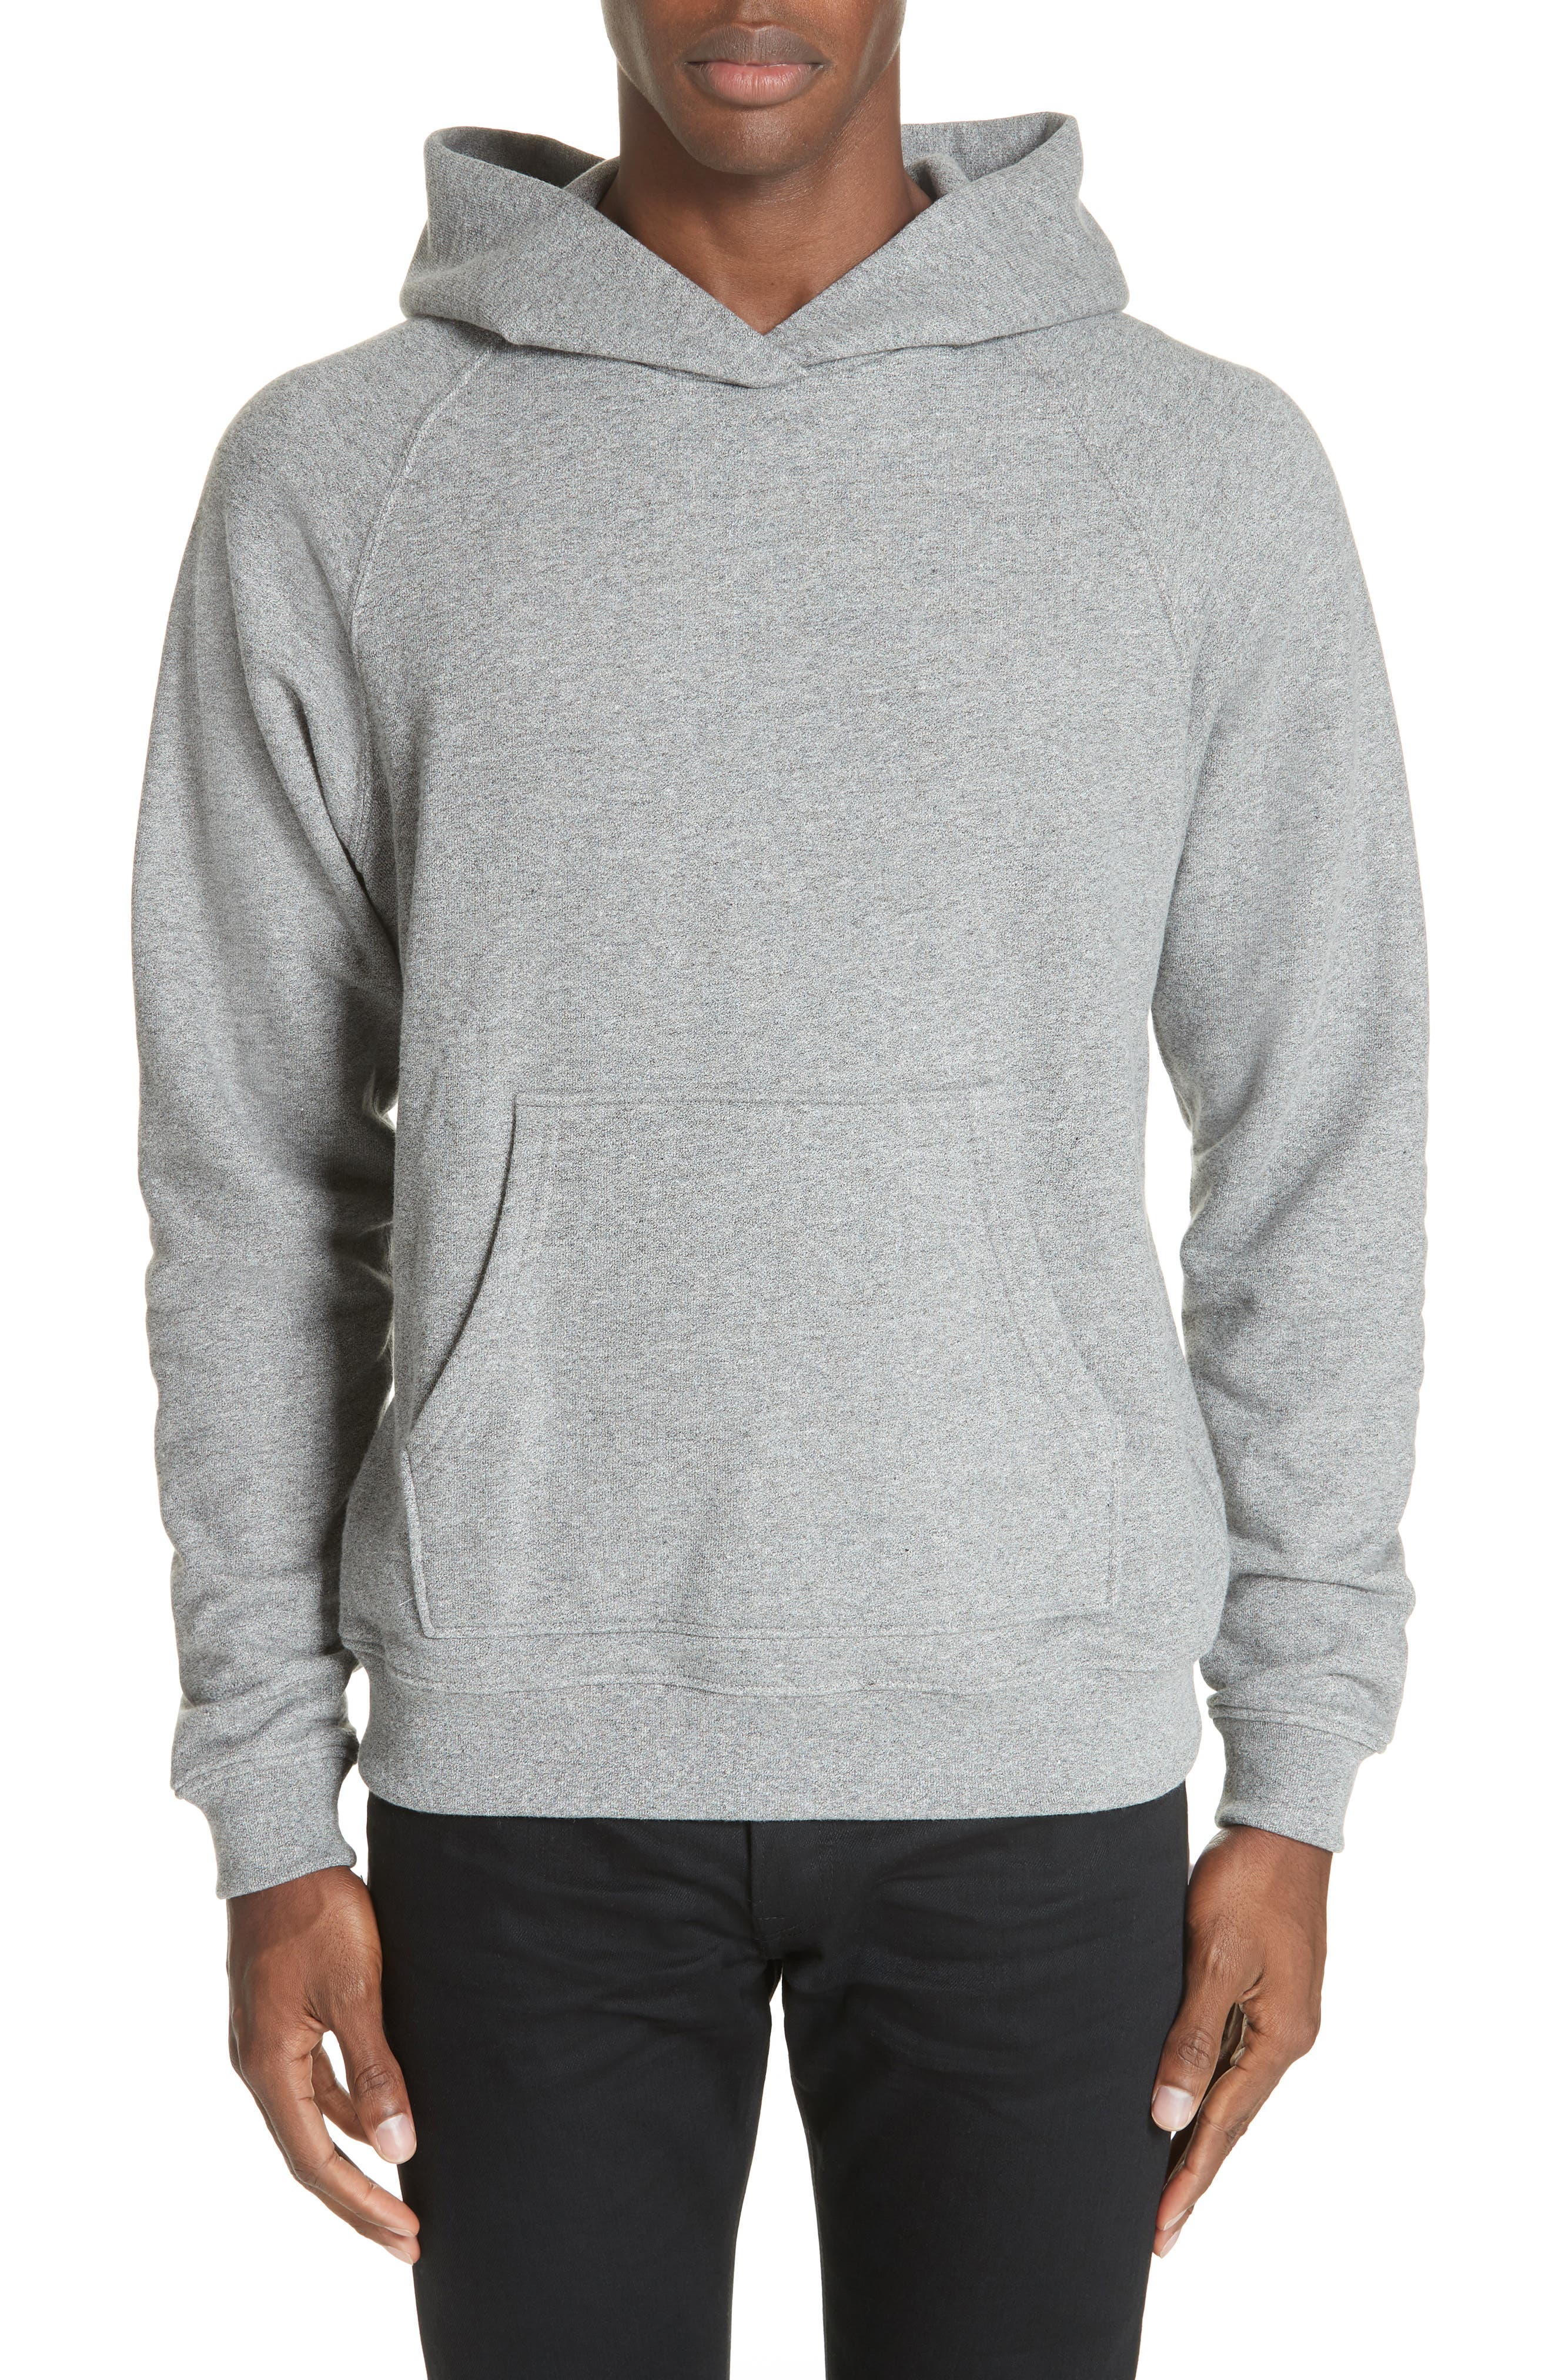 Raglan Hooded Sweatshirt,                             Main thumbnail 1, color,                             DARK GREY